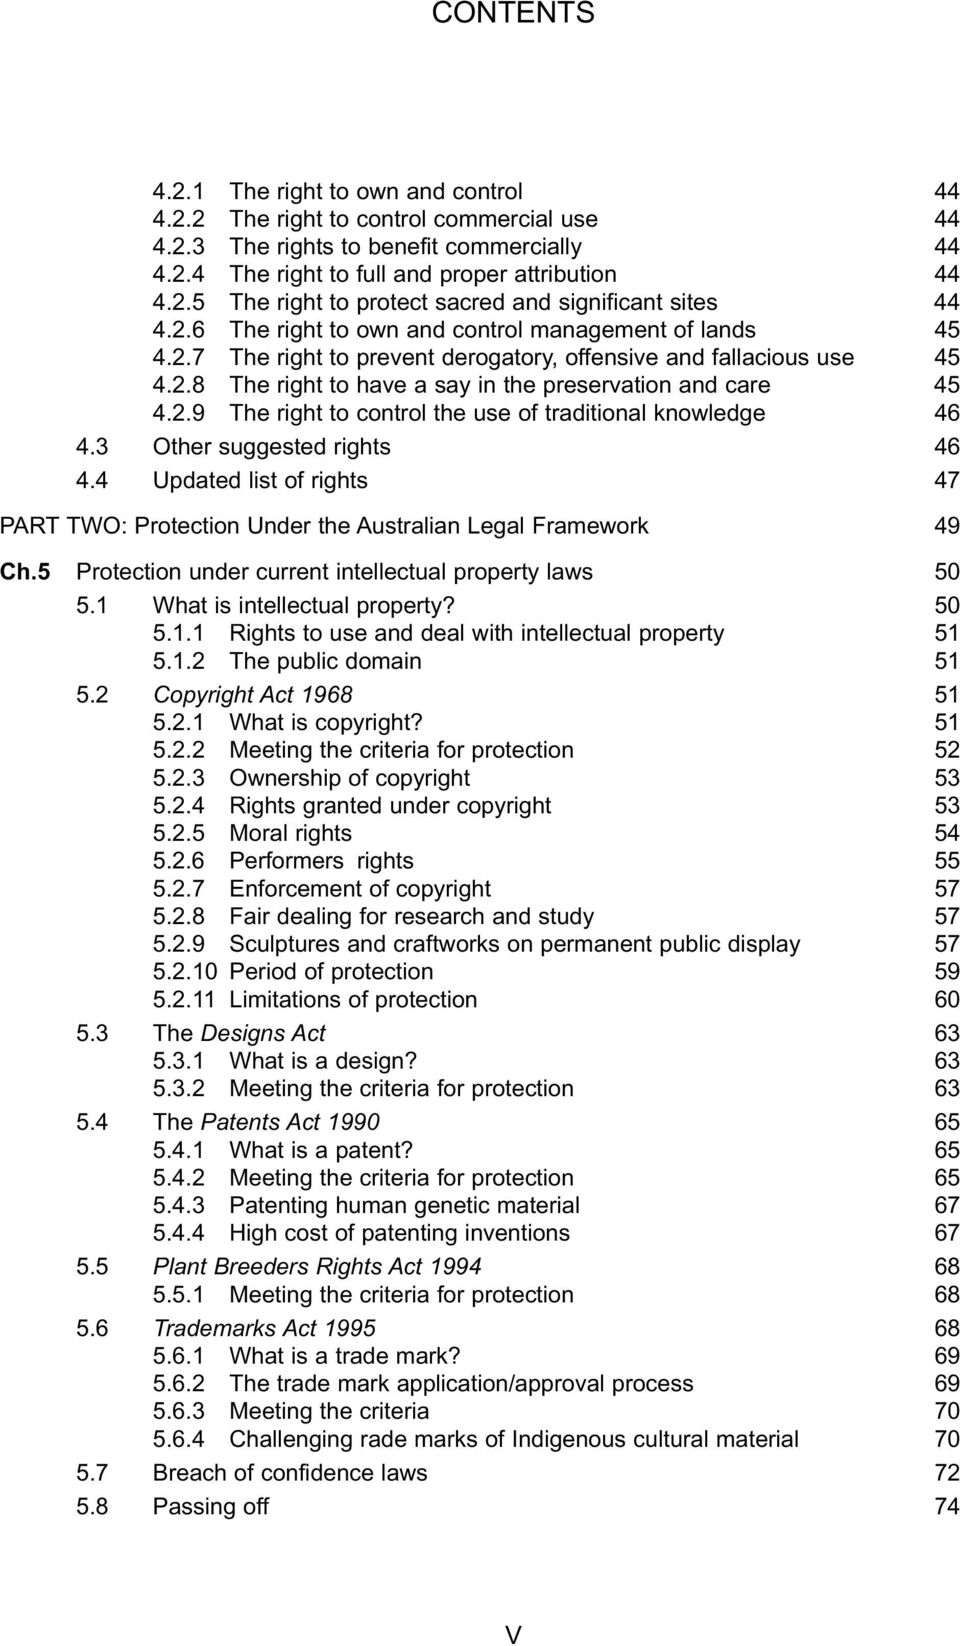 3 Other suggested rights 46 4.4 Updated list of rights 47 PART TWO: Protection Under the Australian Legal Framework 49 Ch.5 Protection under current intellectual property laws 50 5.